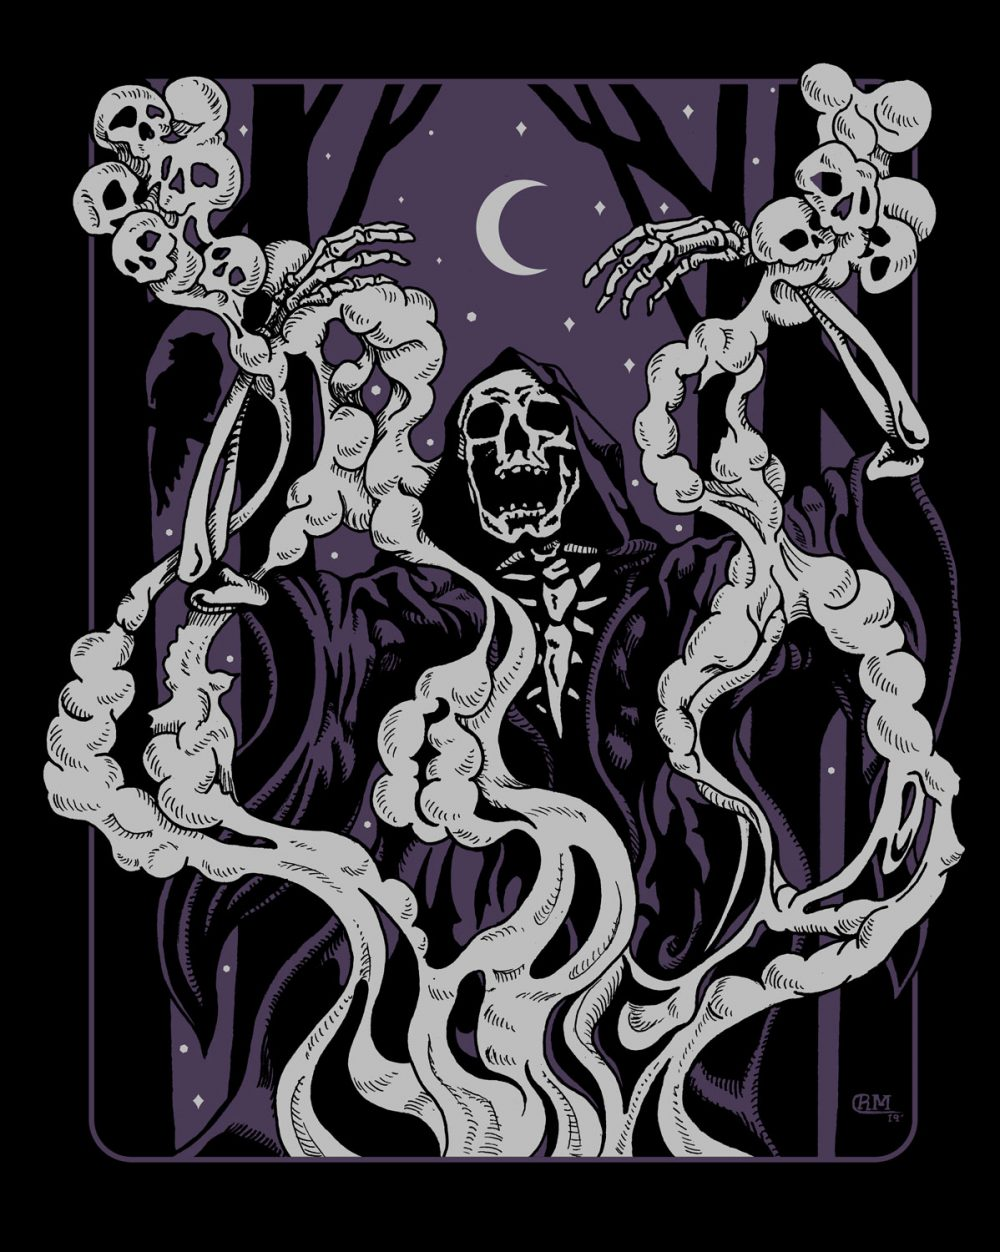 Conjuring - Skeleton Summoning Spirits in Smoke - T-Shirt Design